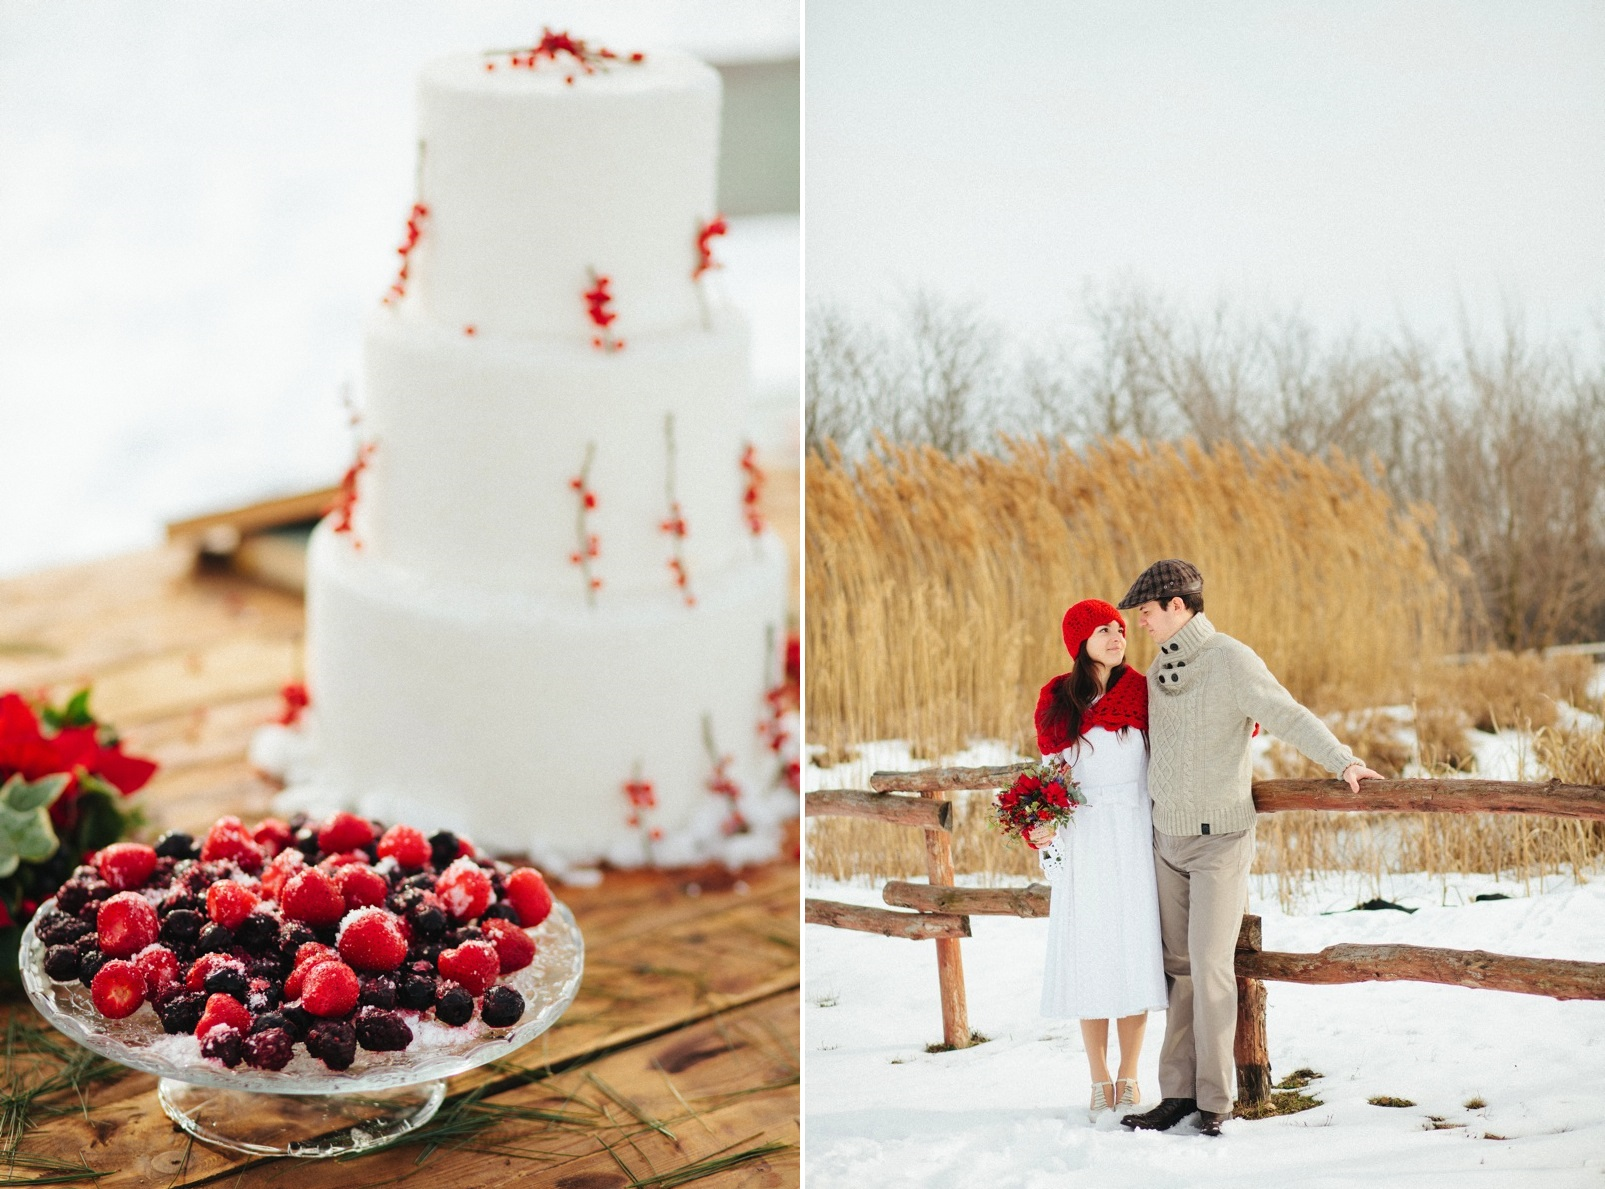 A Christmas Wedding Inspiration Shoot Full of Rustic Charm from Bell Studios